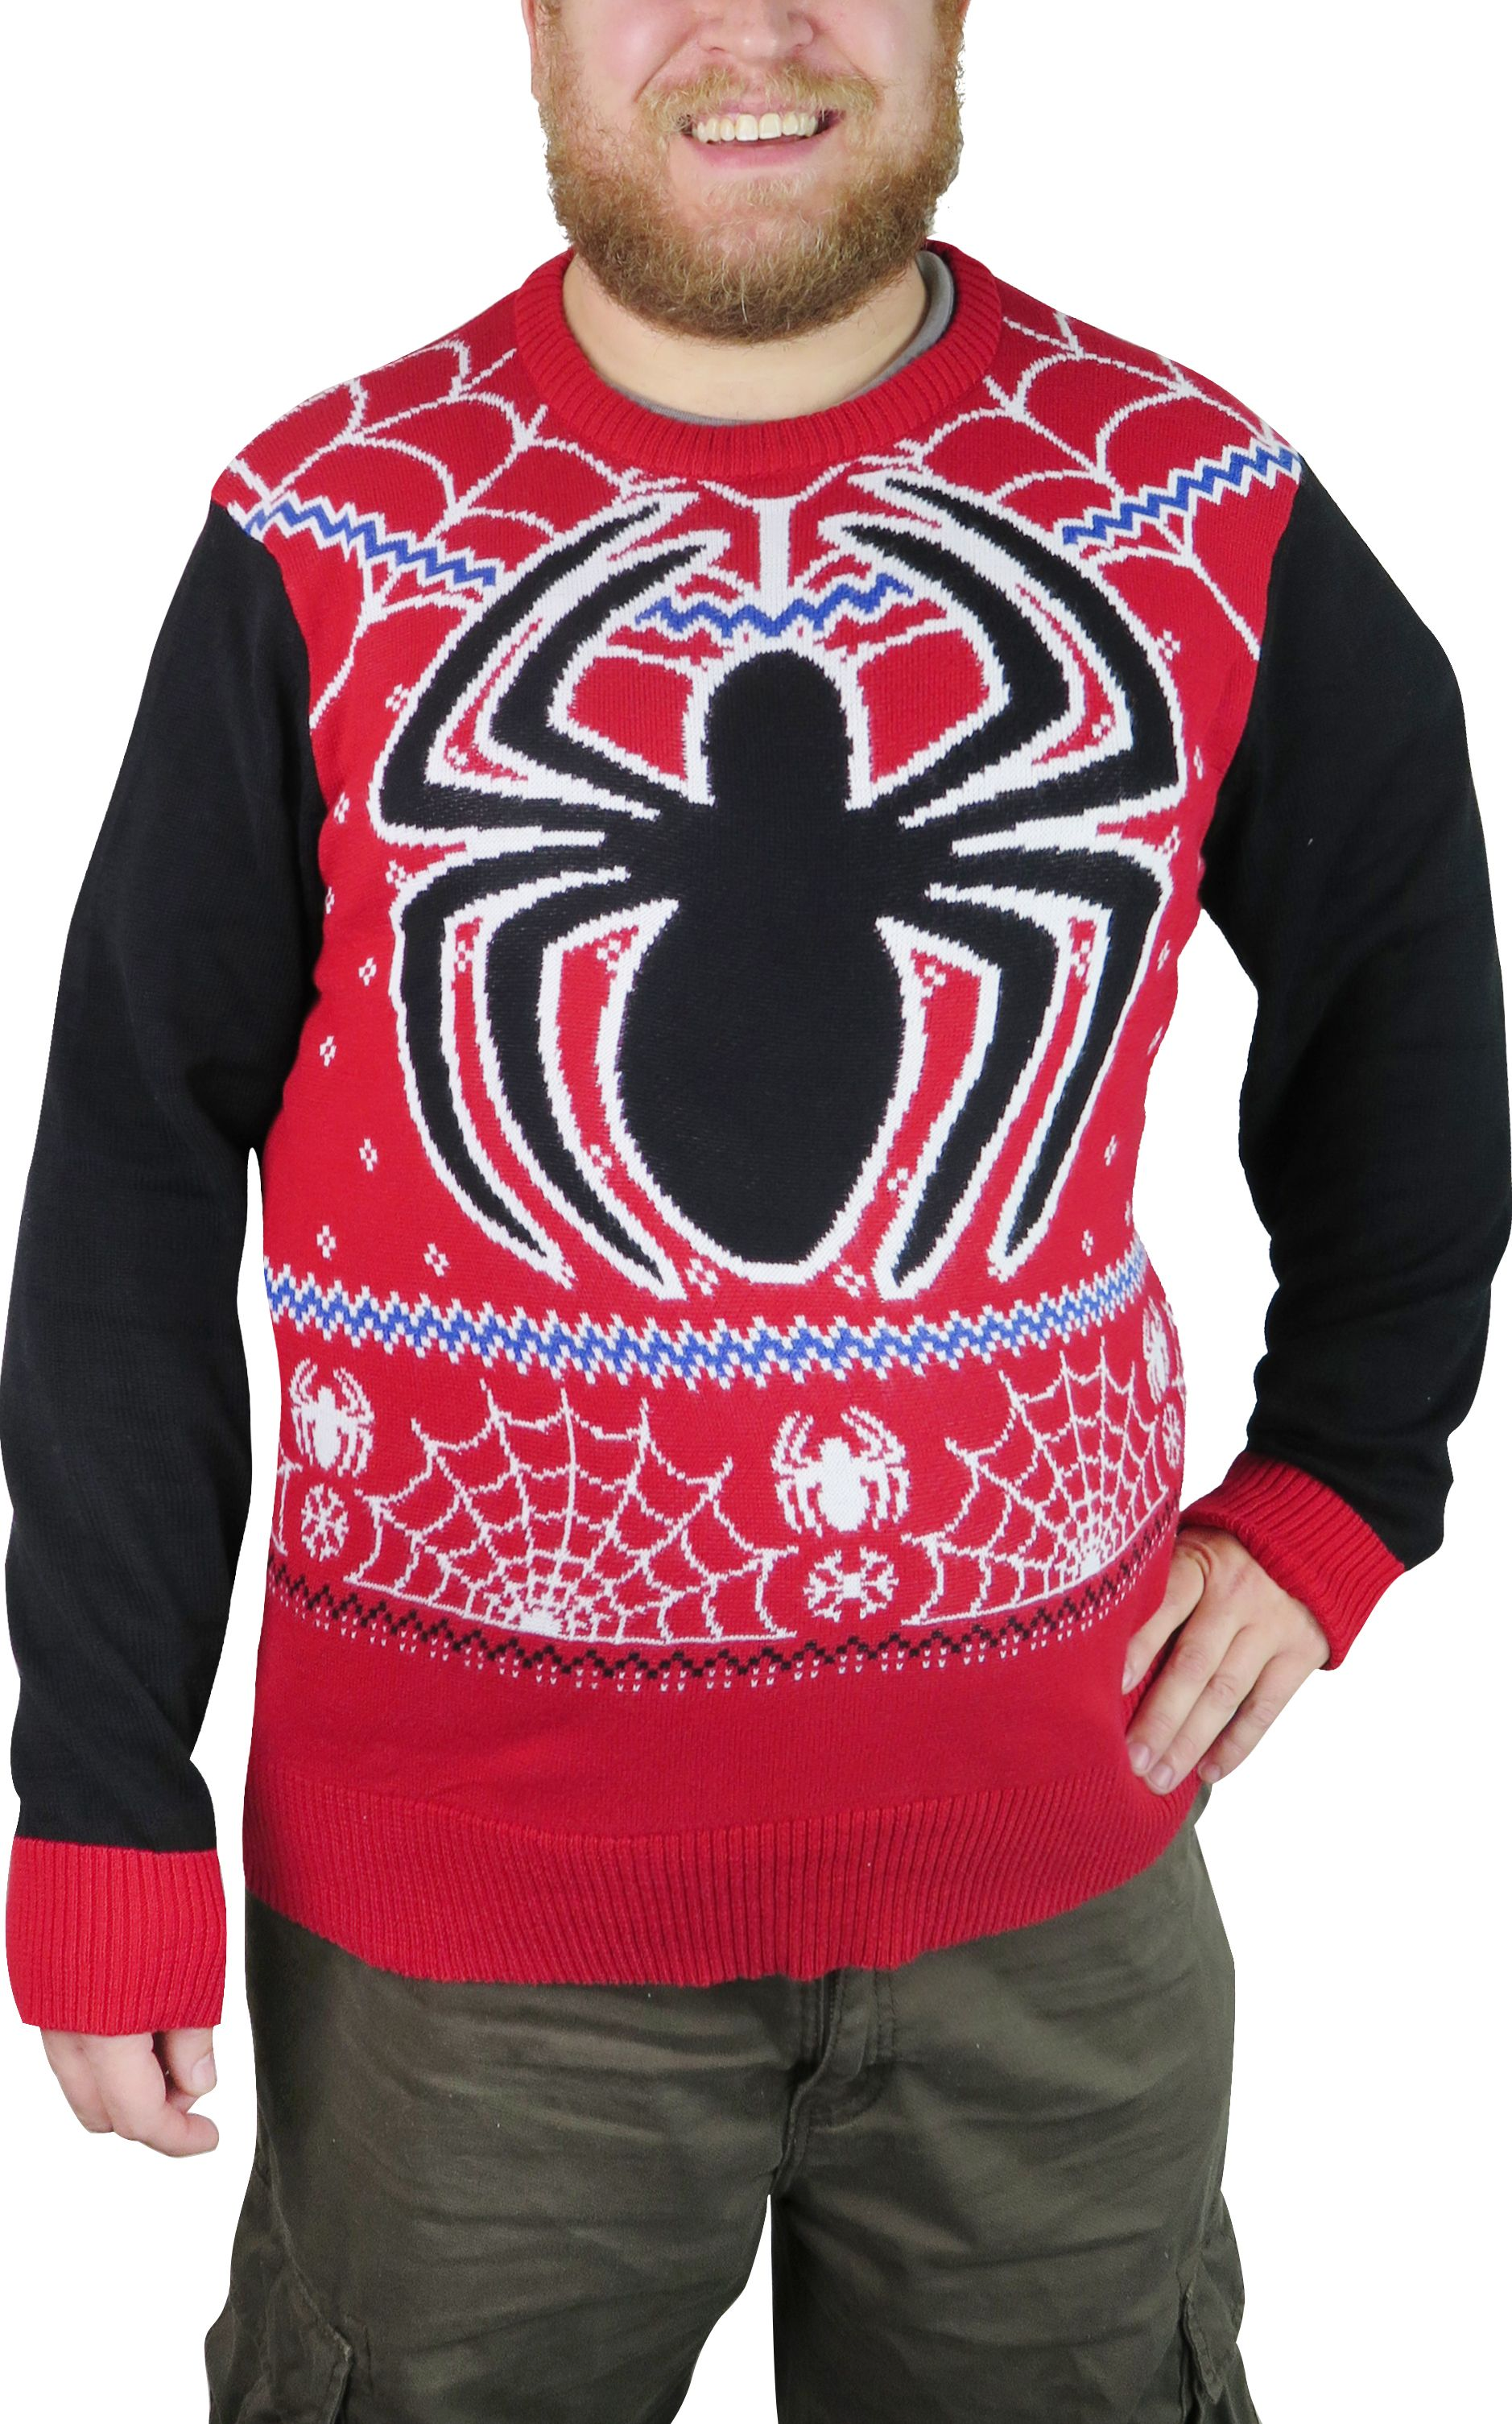 Spiderman Snowflakes Men's Ugly Christmas Sweater | Ugliest ...